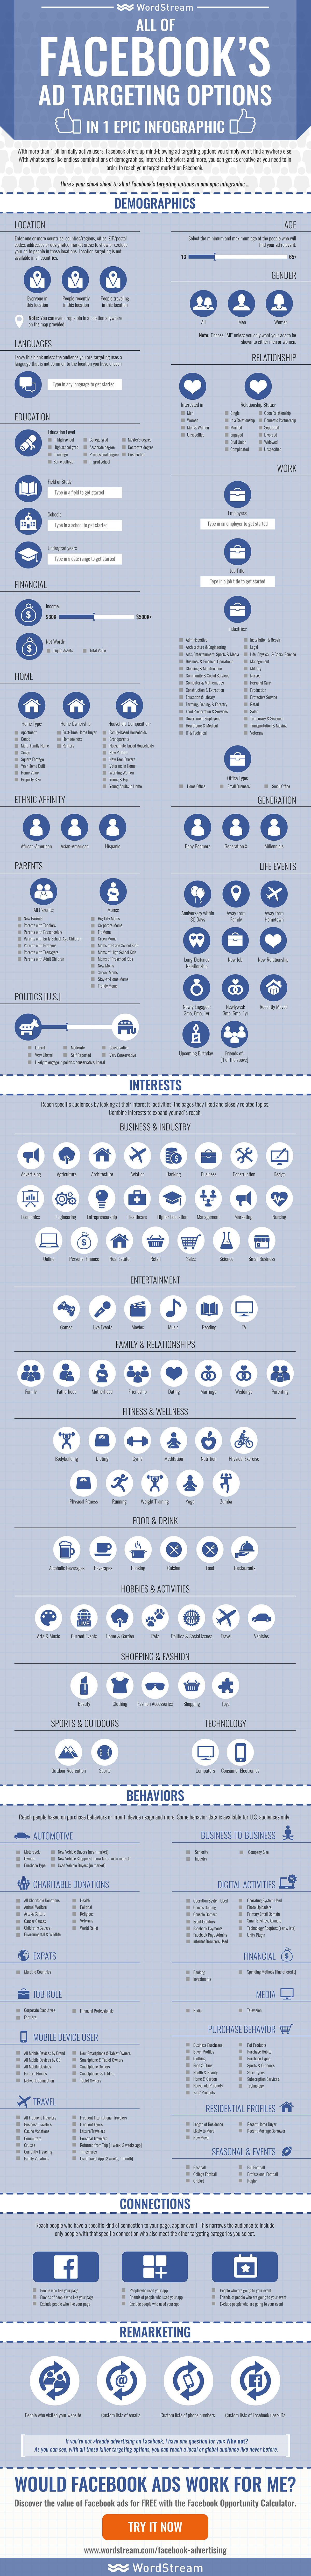 facebook-ad-targeting-options-infographic-wordstream-large